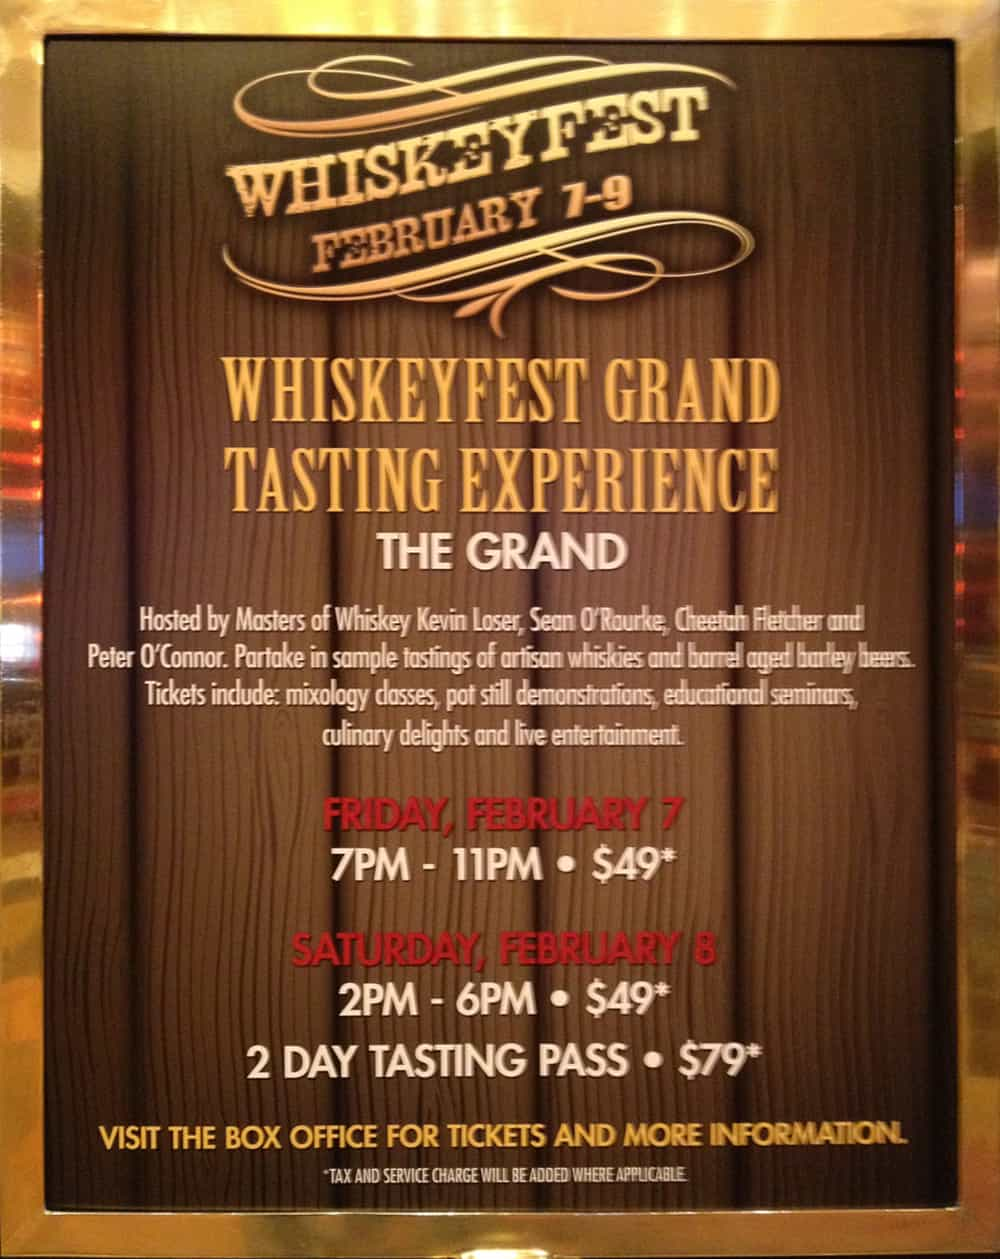 WhiskeyFest at the Golden Nugget Grand Ballroon, Las Vegas, 2014